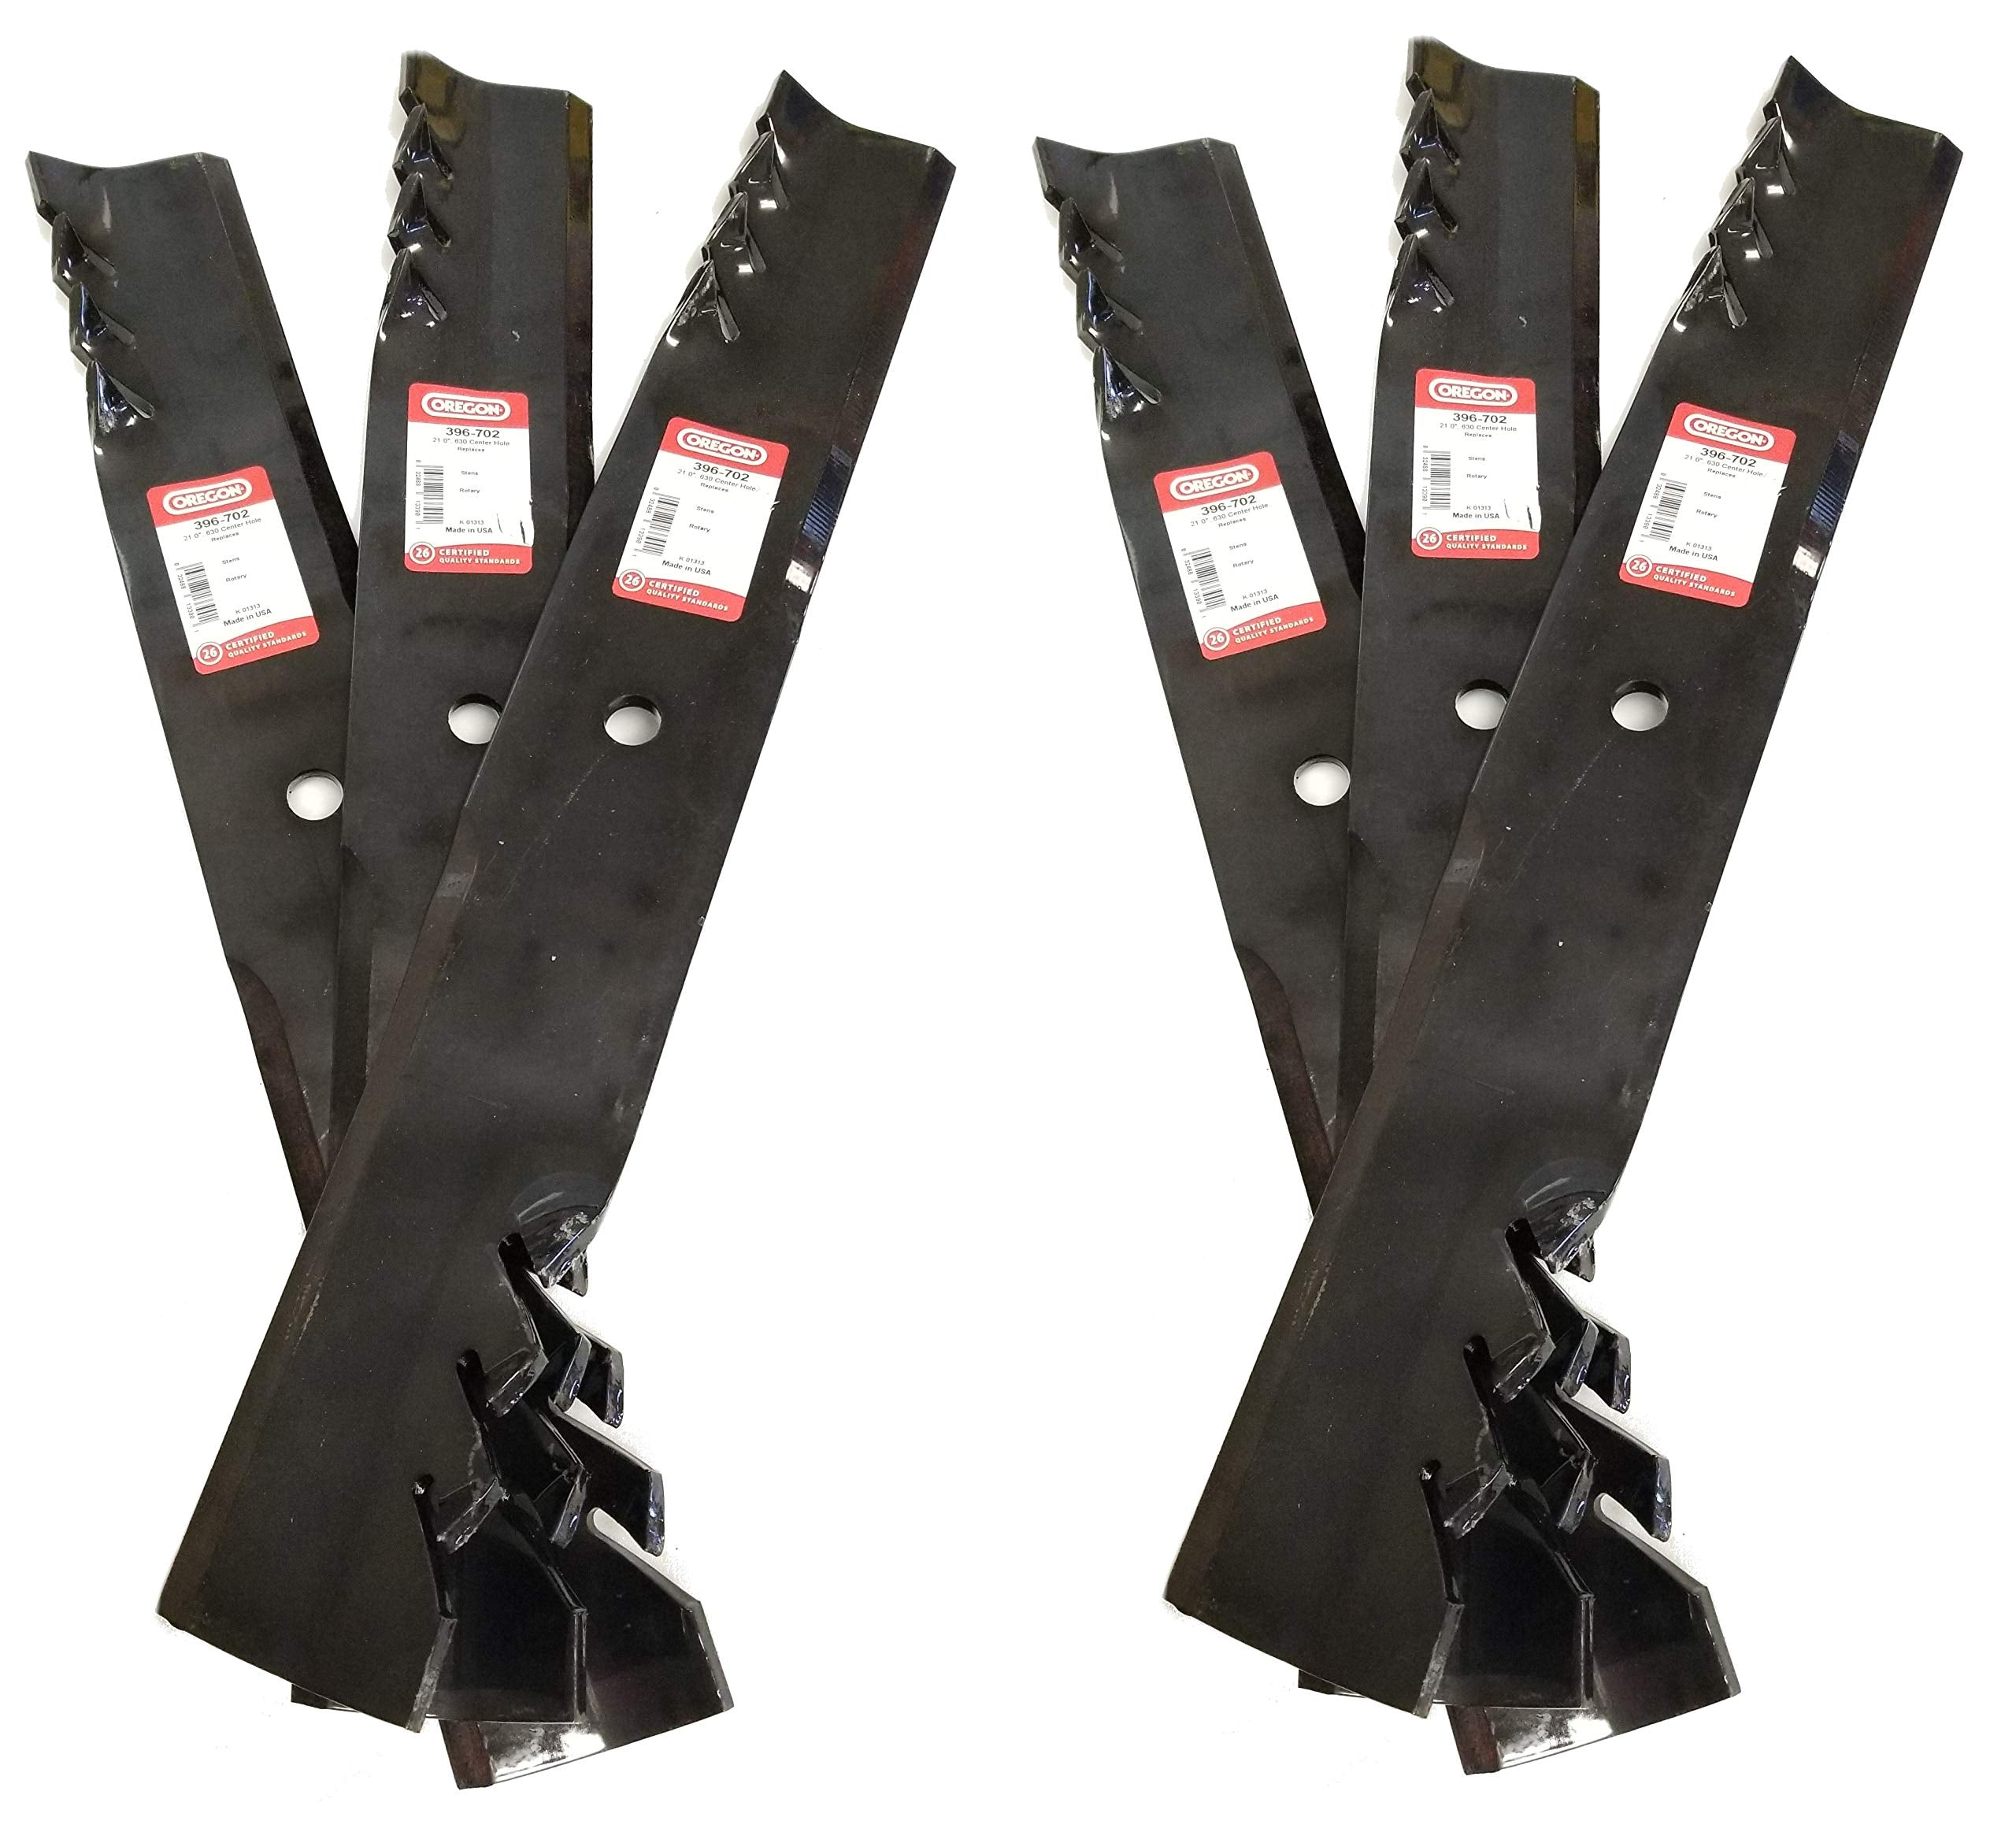 Oregon Gator Blade Sets - 396702 (Set of SIX Blades)